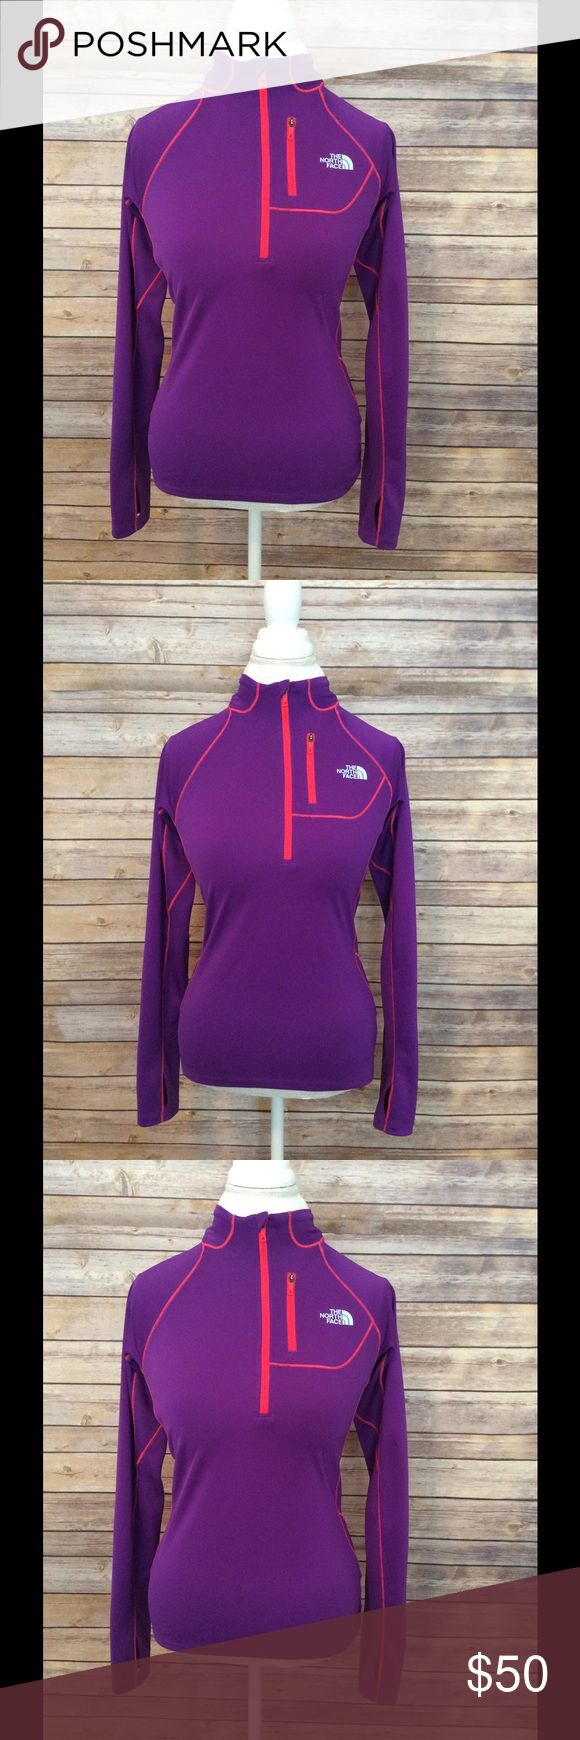 Women's North Face zip up jacket Women's The North Face purple and orange zip up pull over jacket. Has a tiny chest pocket that could fit money / credit card / keys. In perfect condition. Has thumb holes! The North Face Jackets & Coats